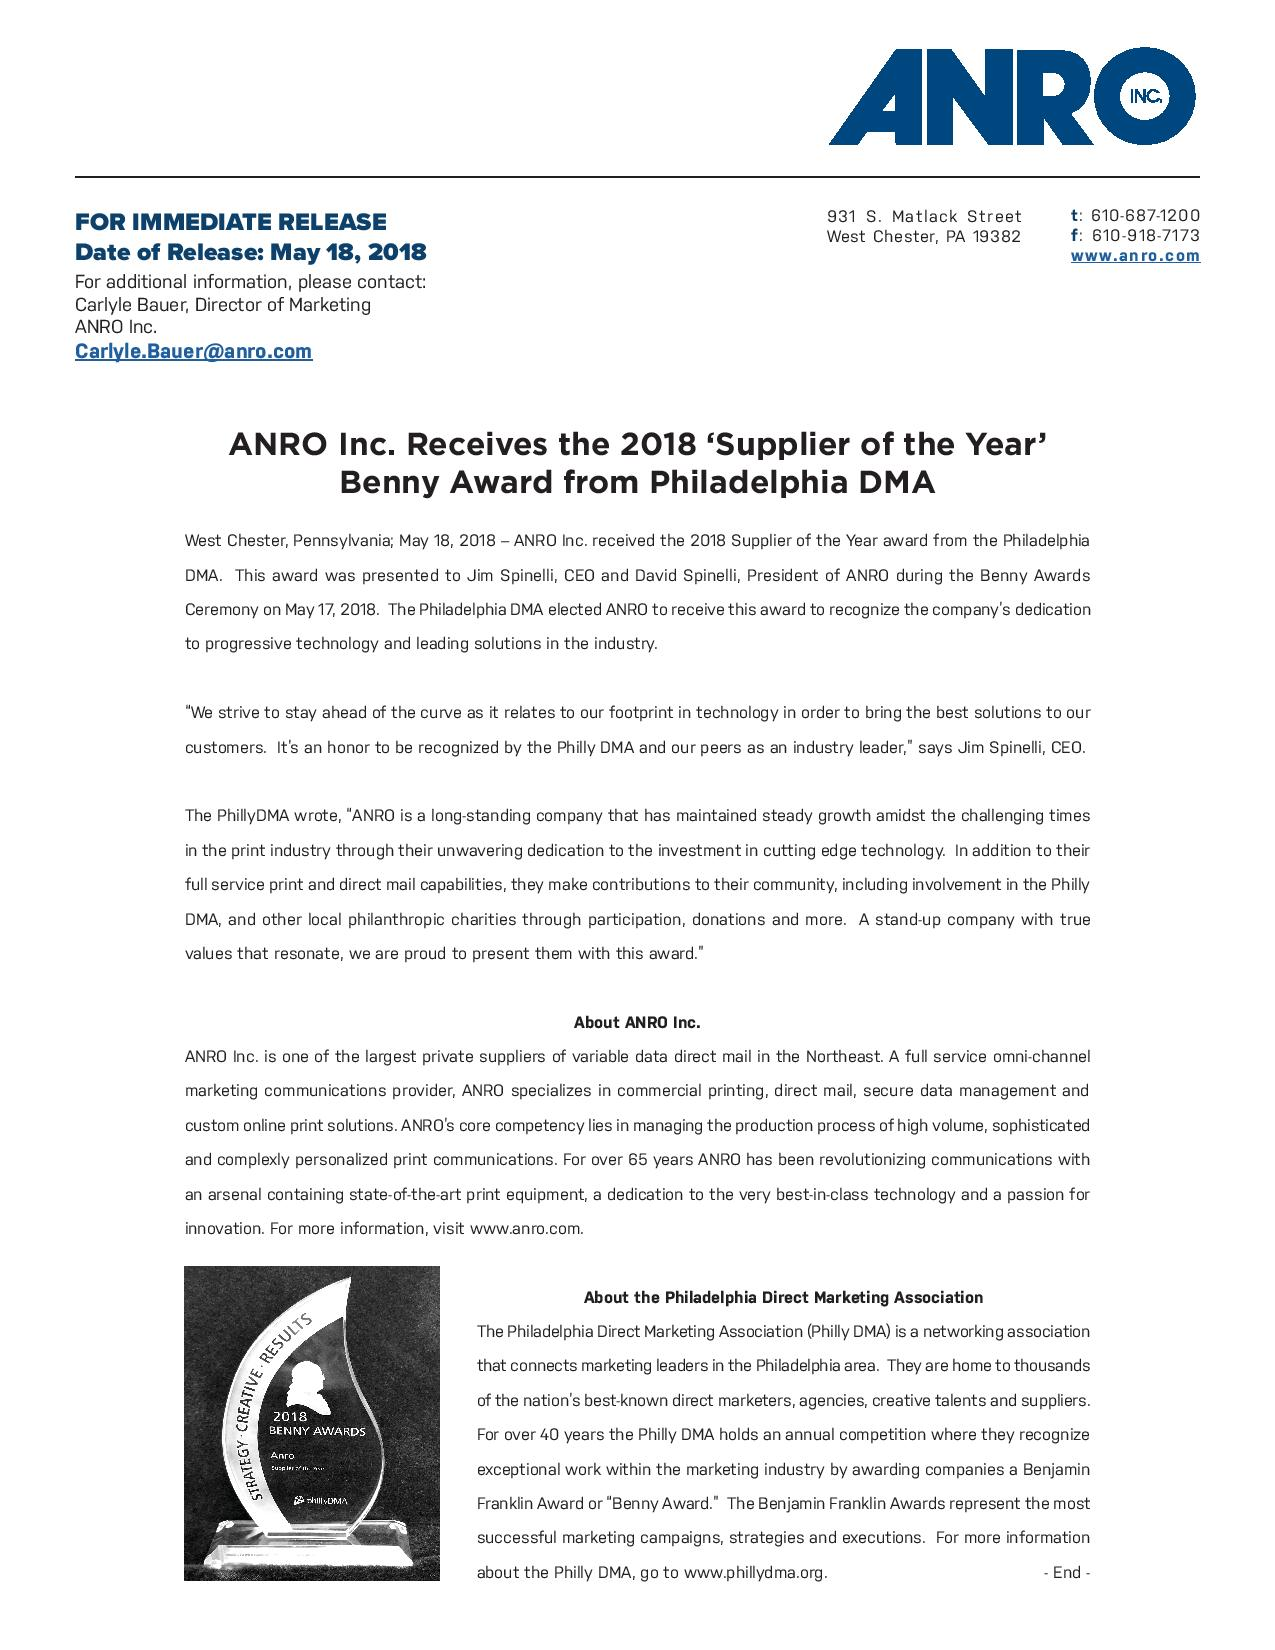 ANRO Inc. Receives the 2018 'Supplier of the Year'